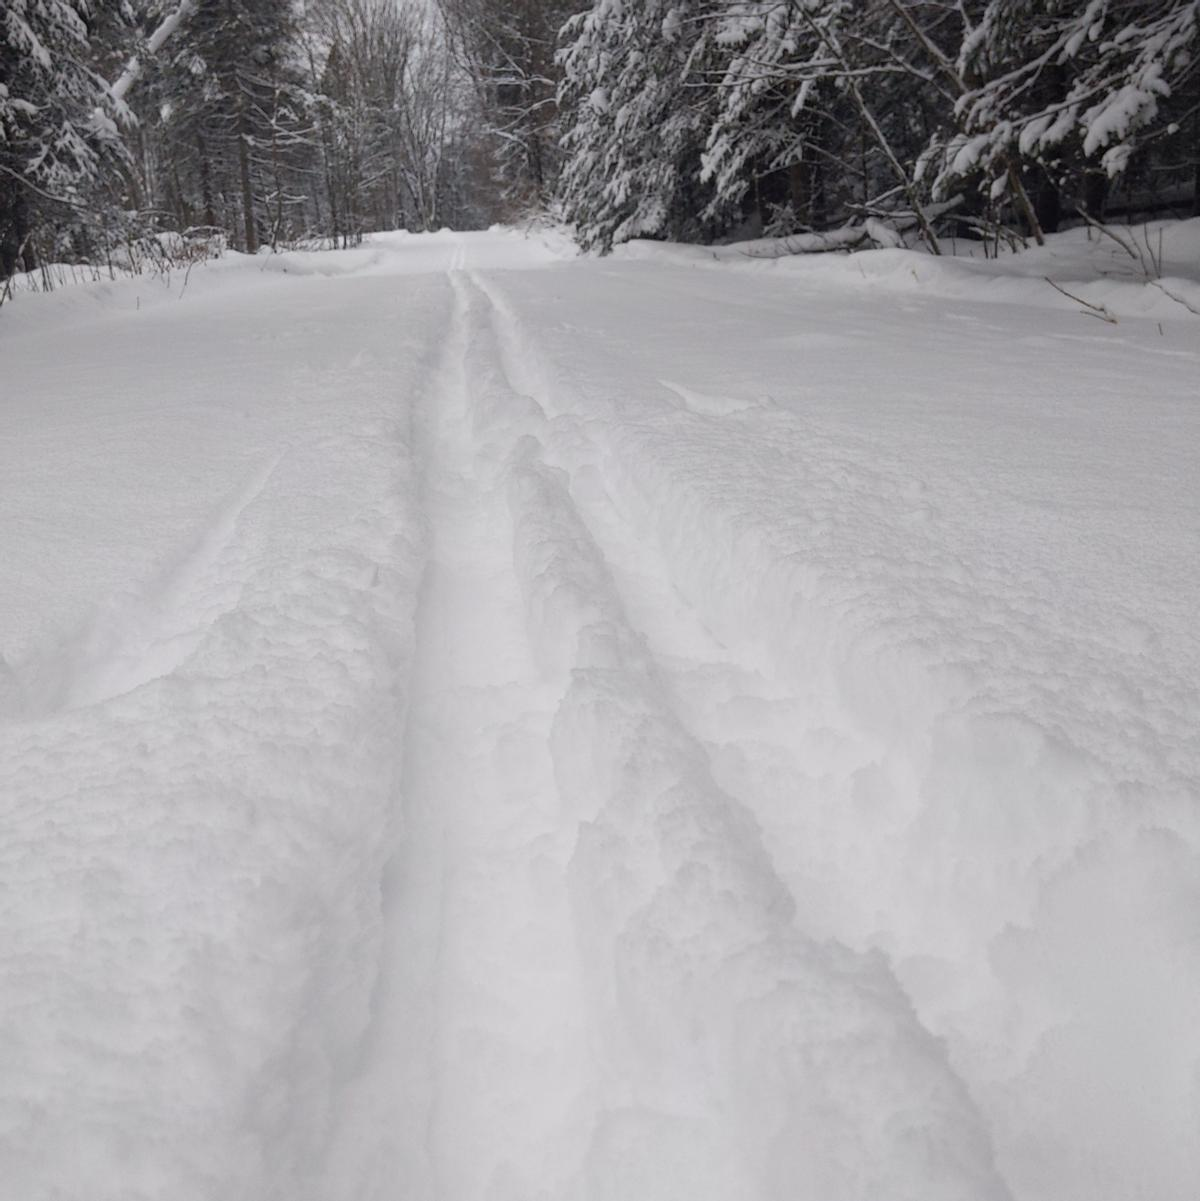 Ski tracks through 6 inches of new snow on a wide trail.